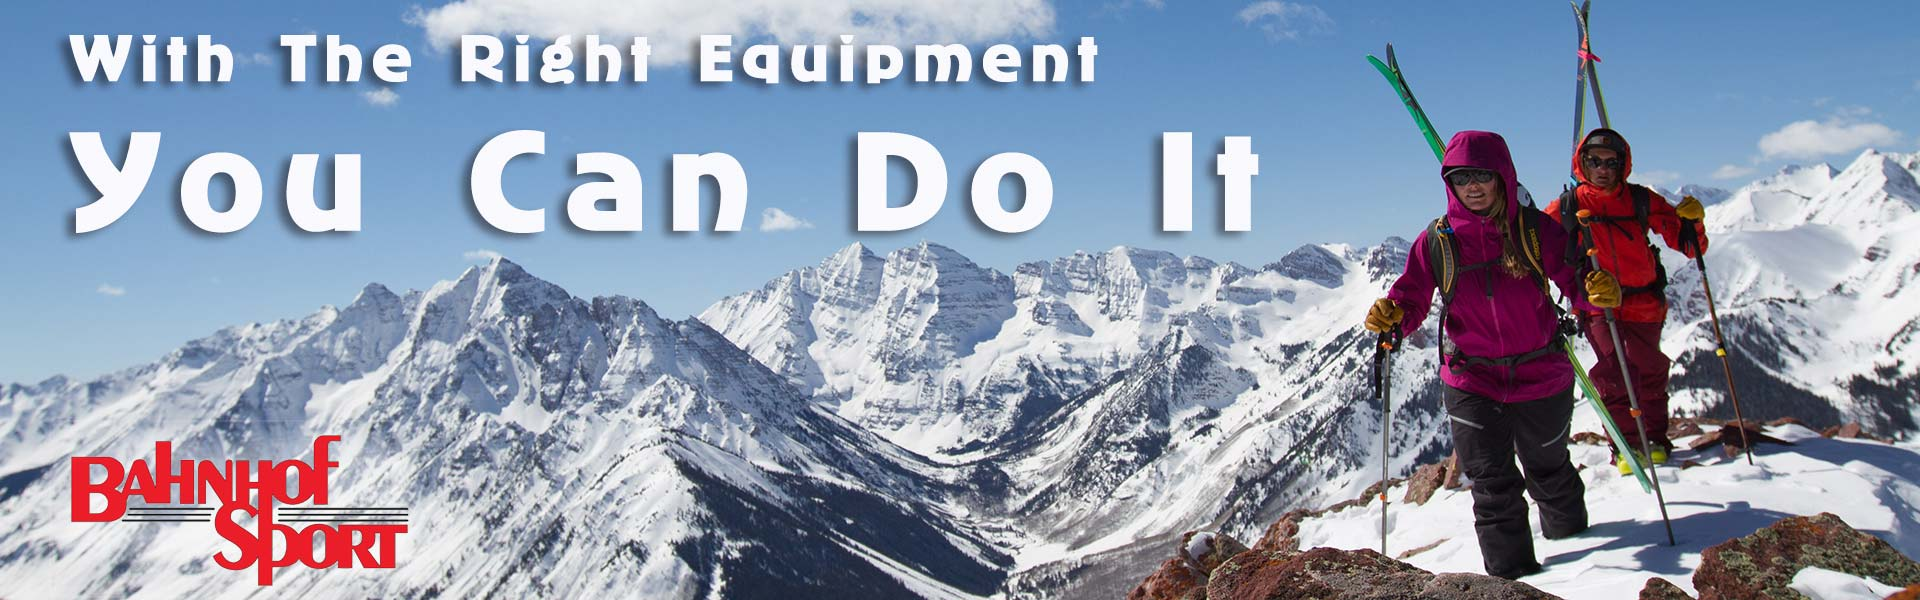 With the right equipment you can do it!